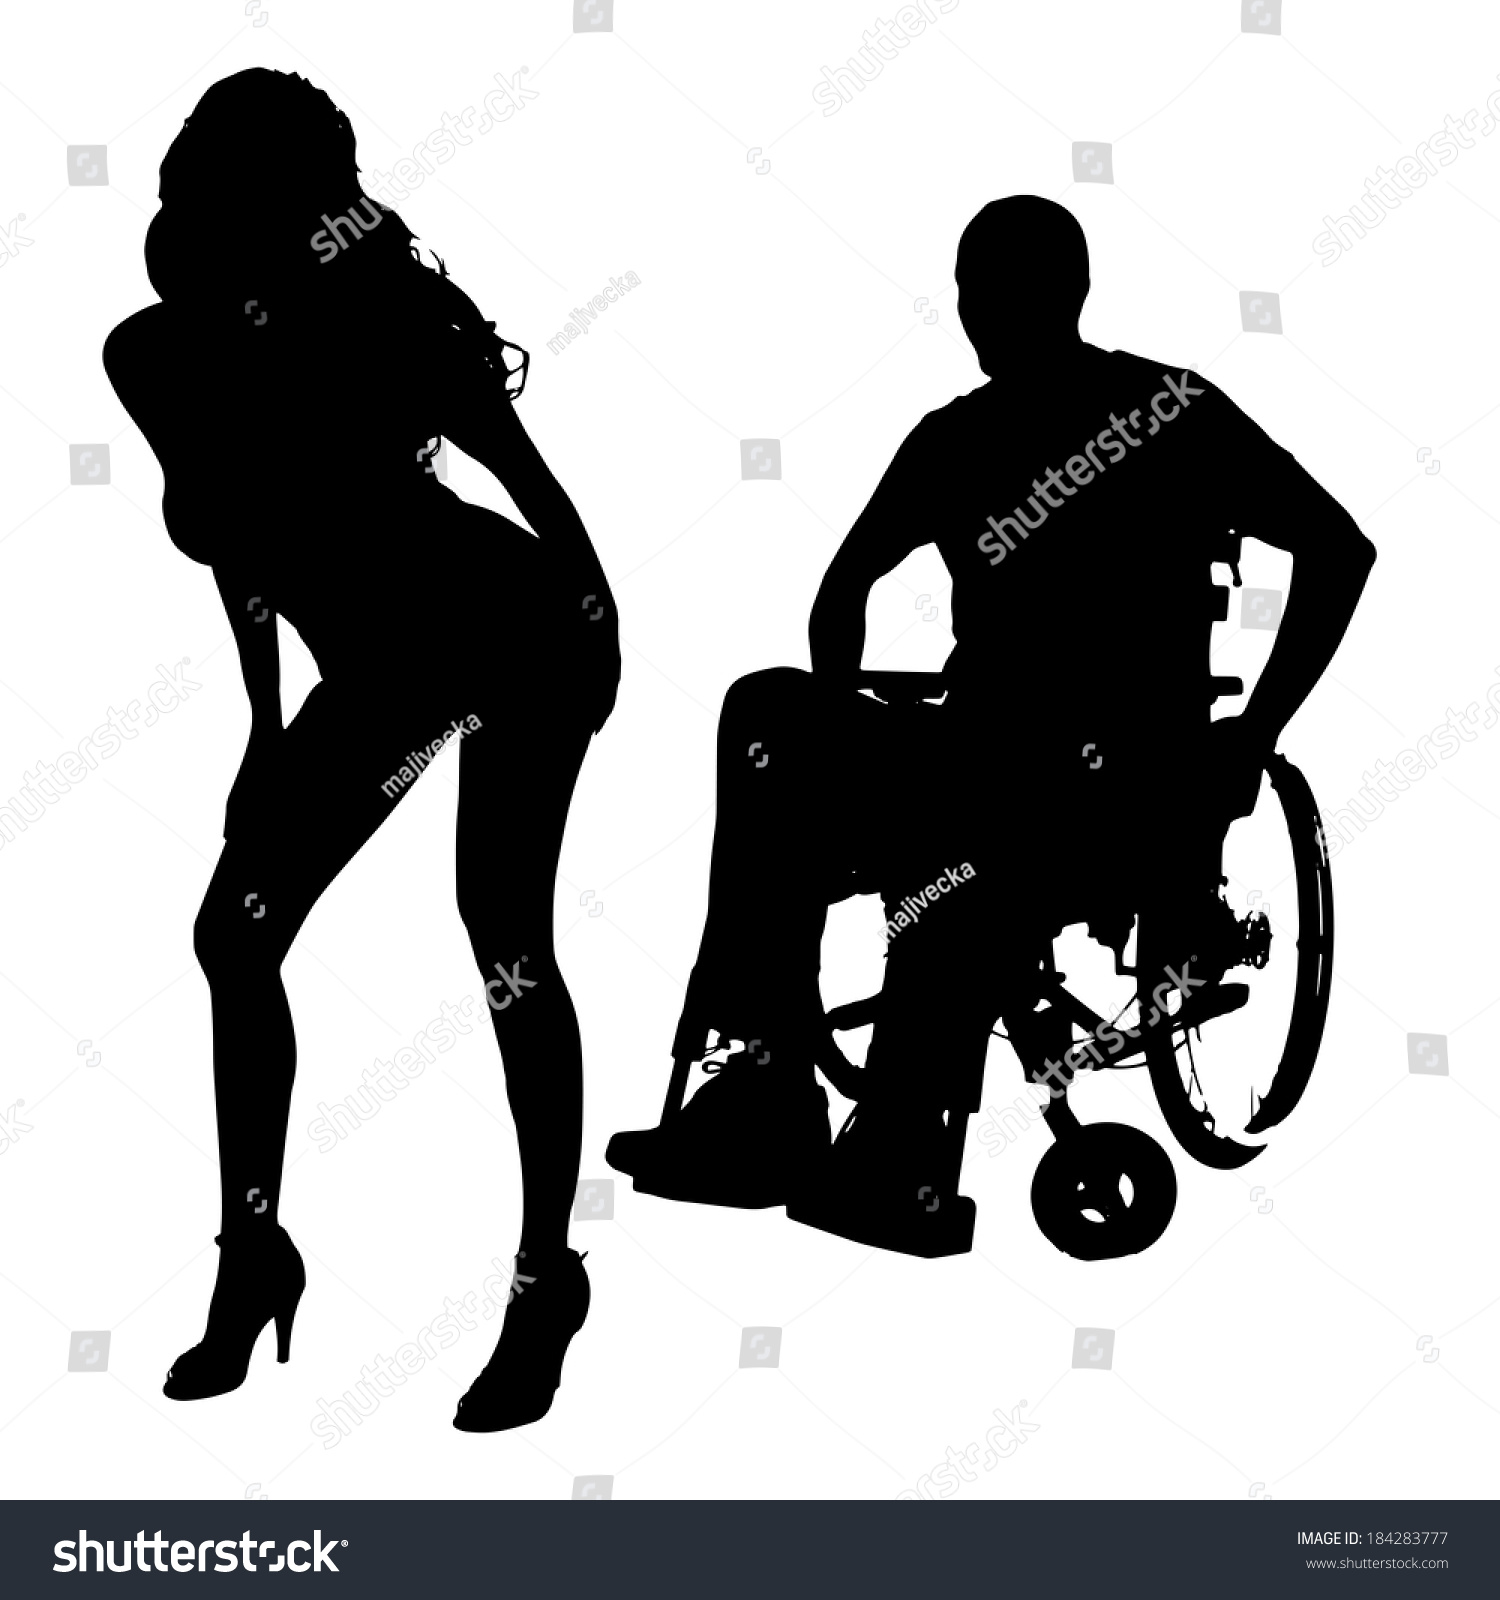 Vector Silhouette Man Sexy Woman On Stock Vector 184283777 - Shutterstock-7024